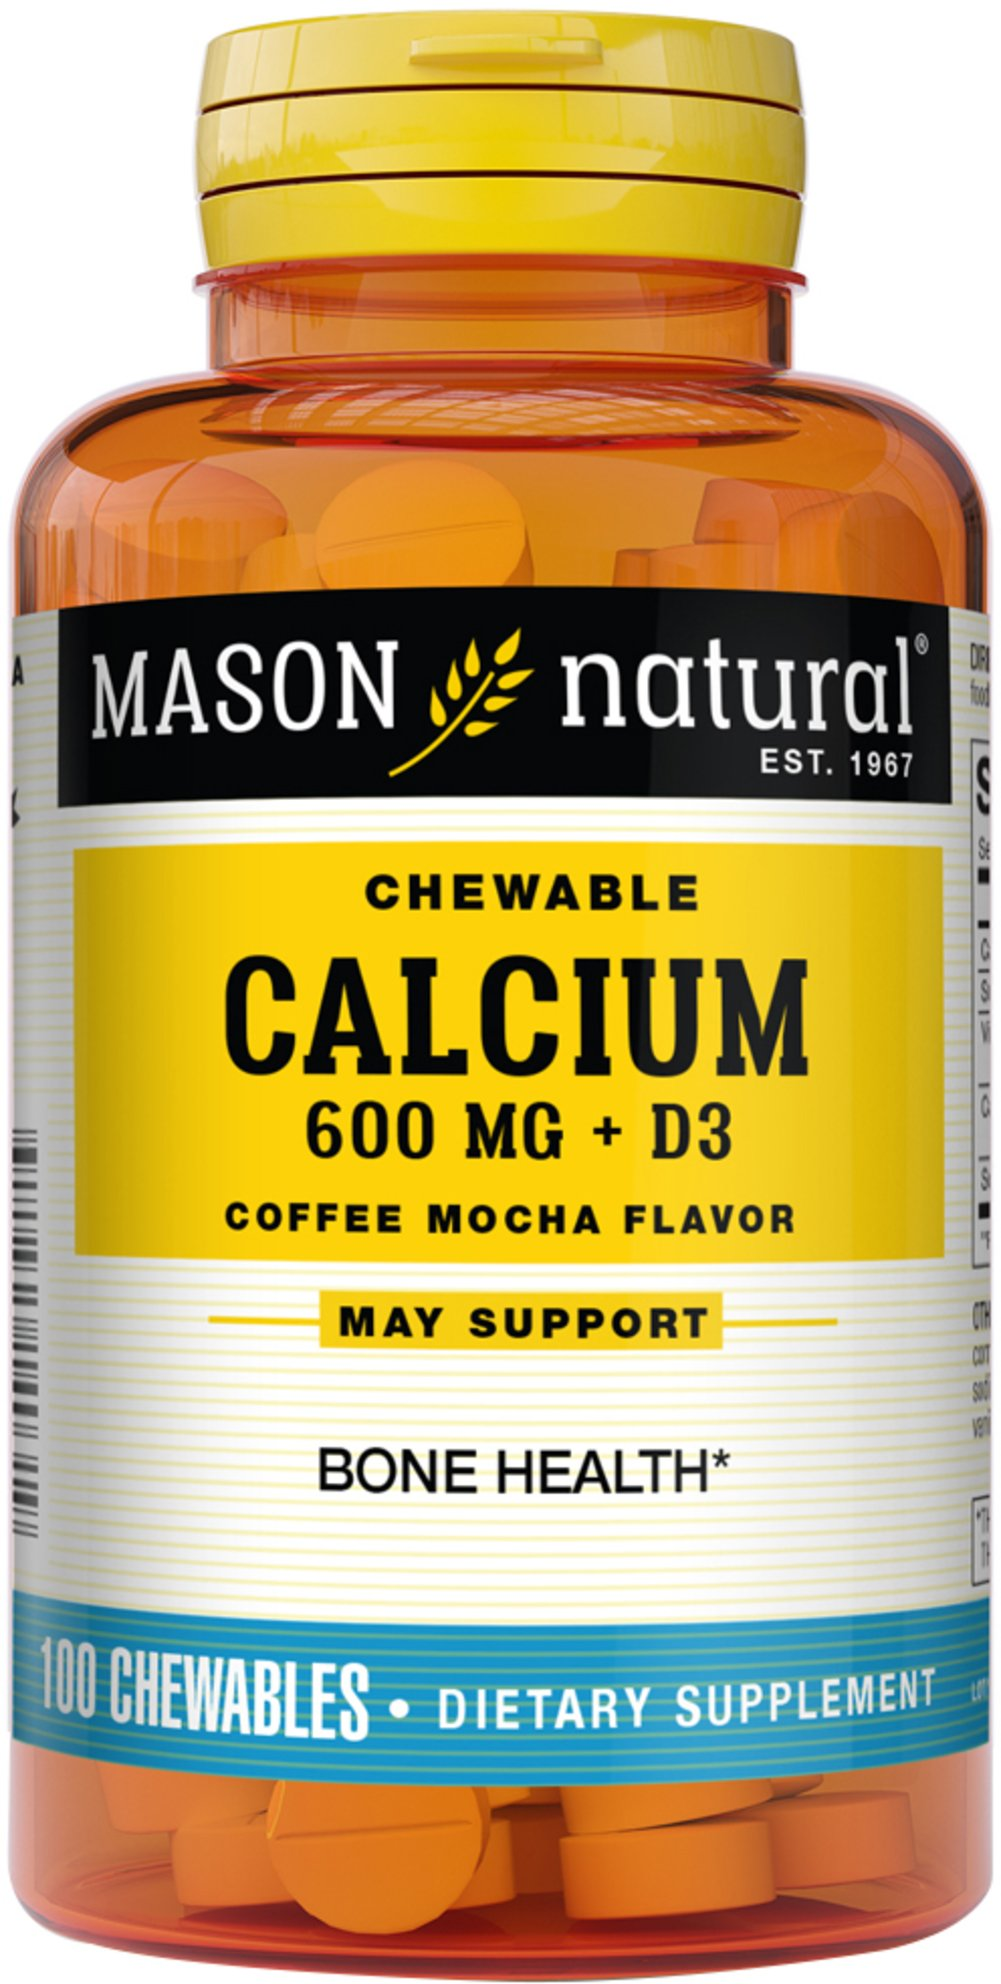 Chewable Calcium 600 plus D3 <b><p>From the manufacturer's label:</b></p> <p>Mason Chewable Super Calcium contains  600mg of Calcium and  +  400iu of Vitamin D3.</p> <p>Coffee Mocha Flavor.</p> 100 Chewables 600 mg/400 IU $5.99